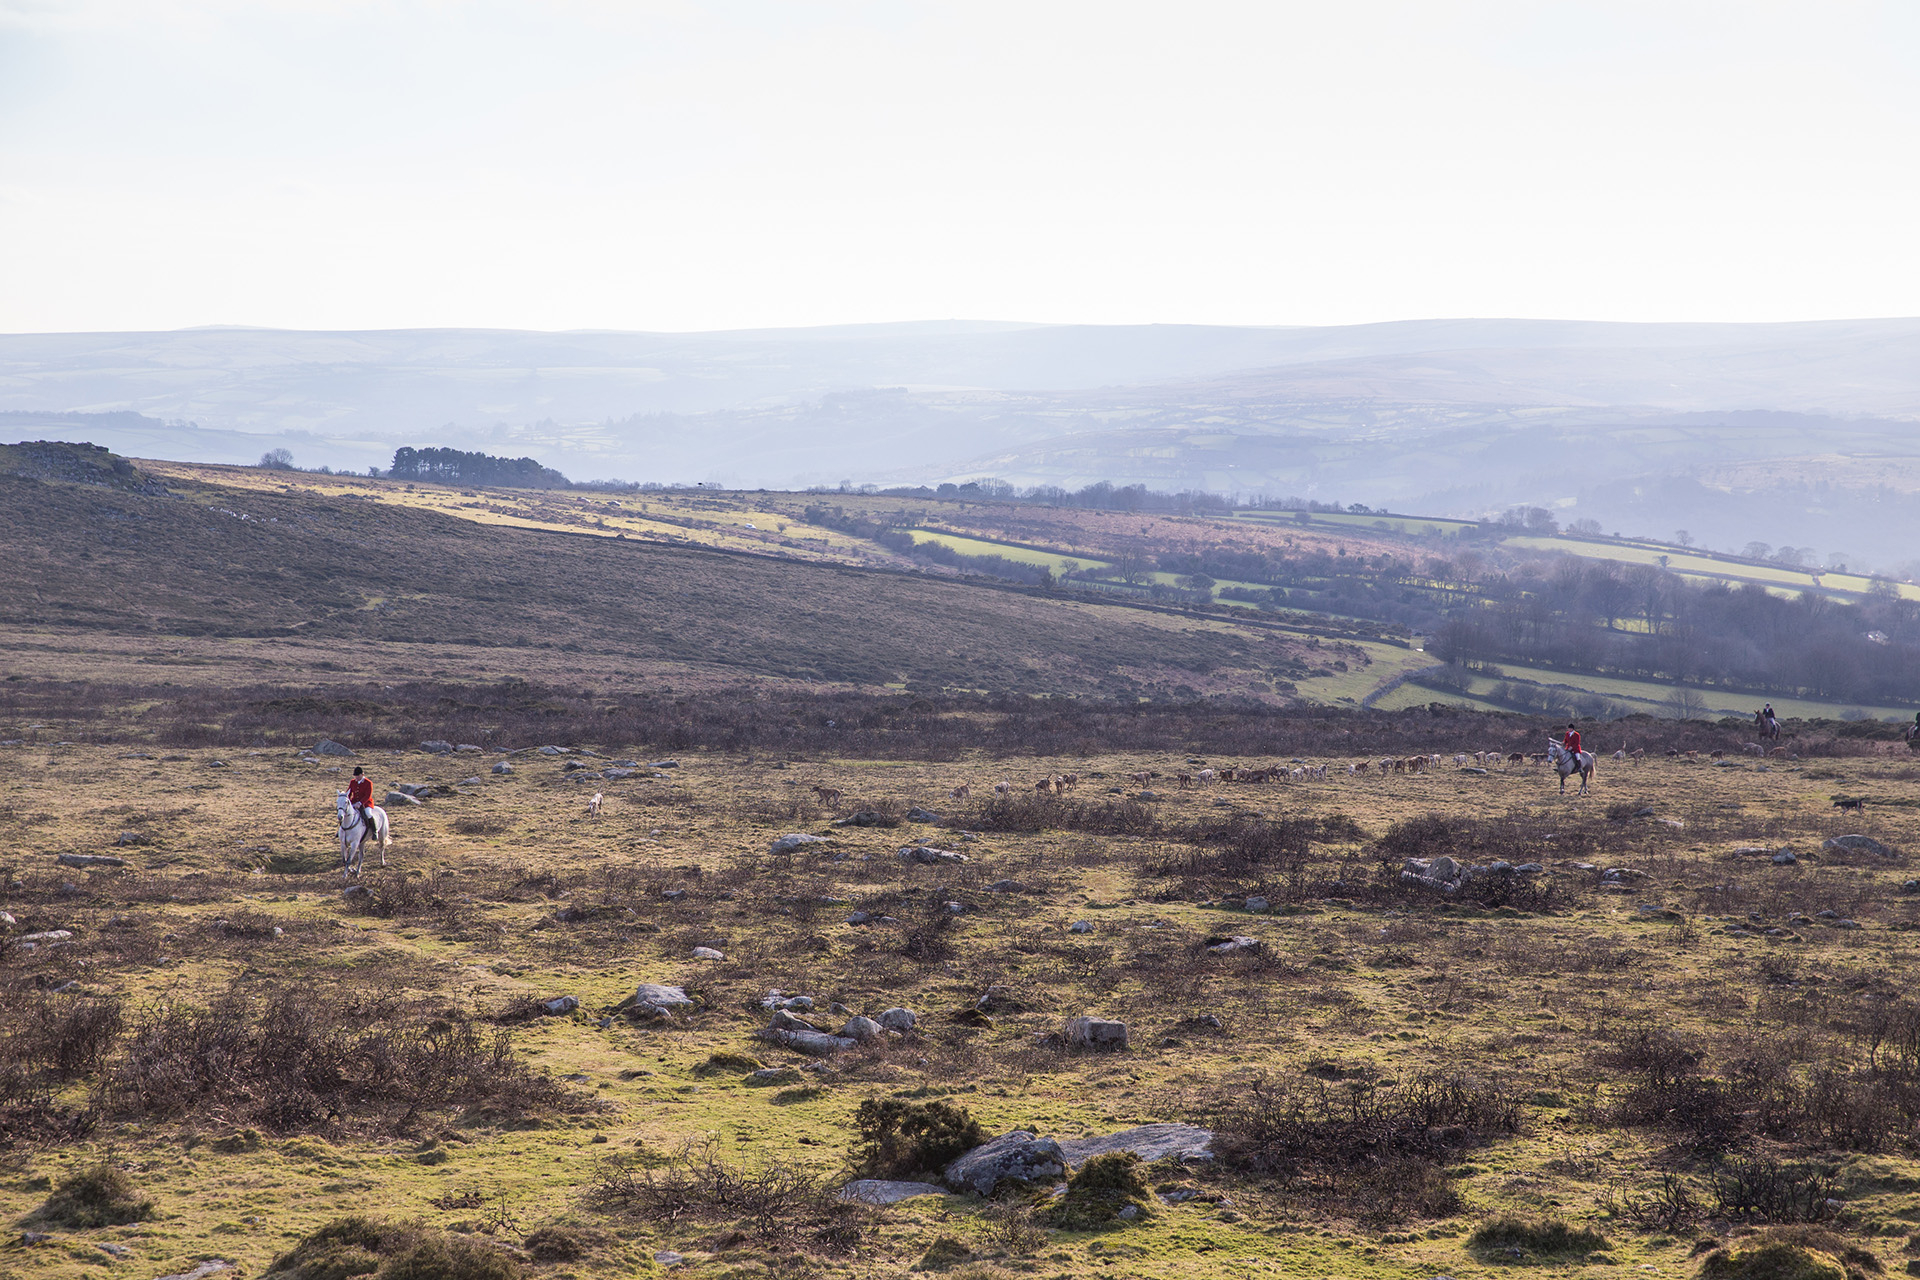 The Dartmoor Hunt in full chase across the rocky outcrops.